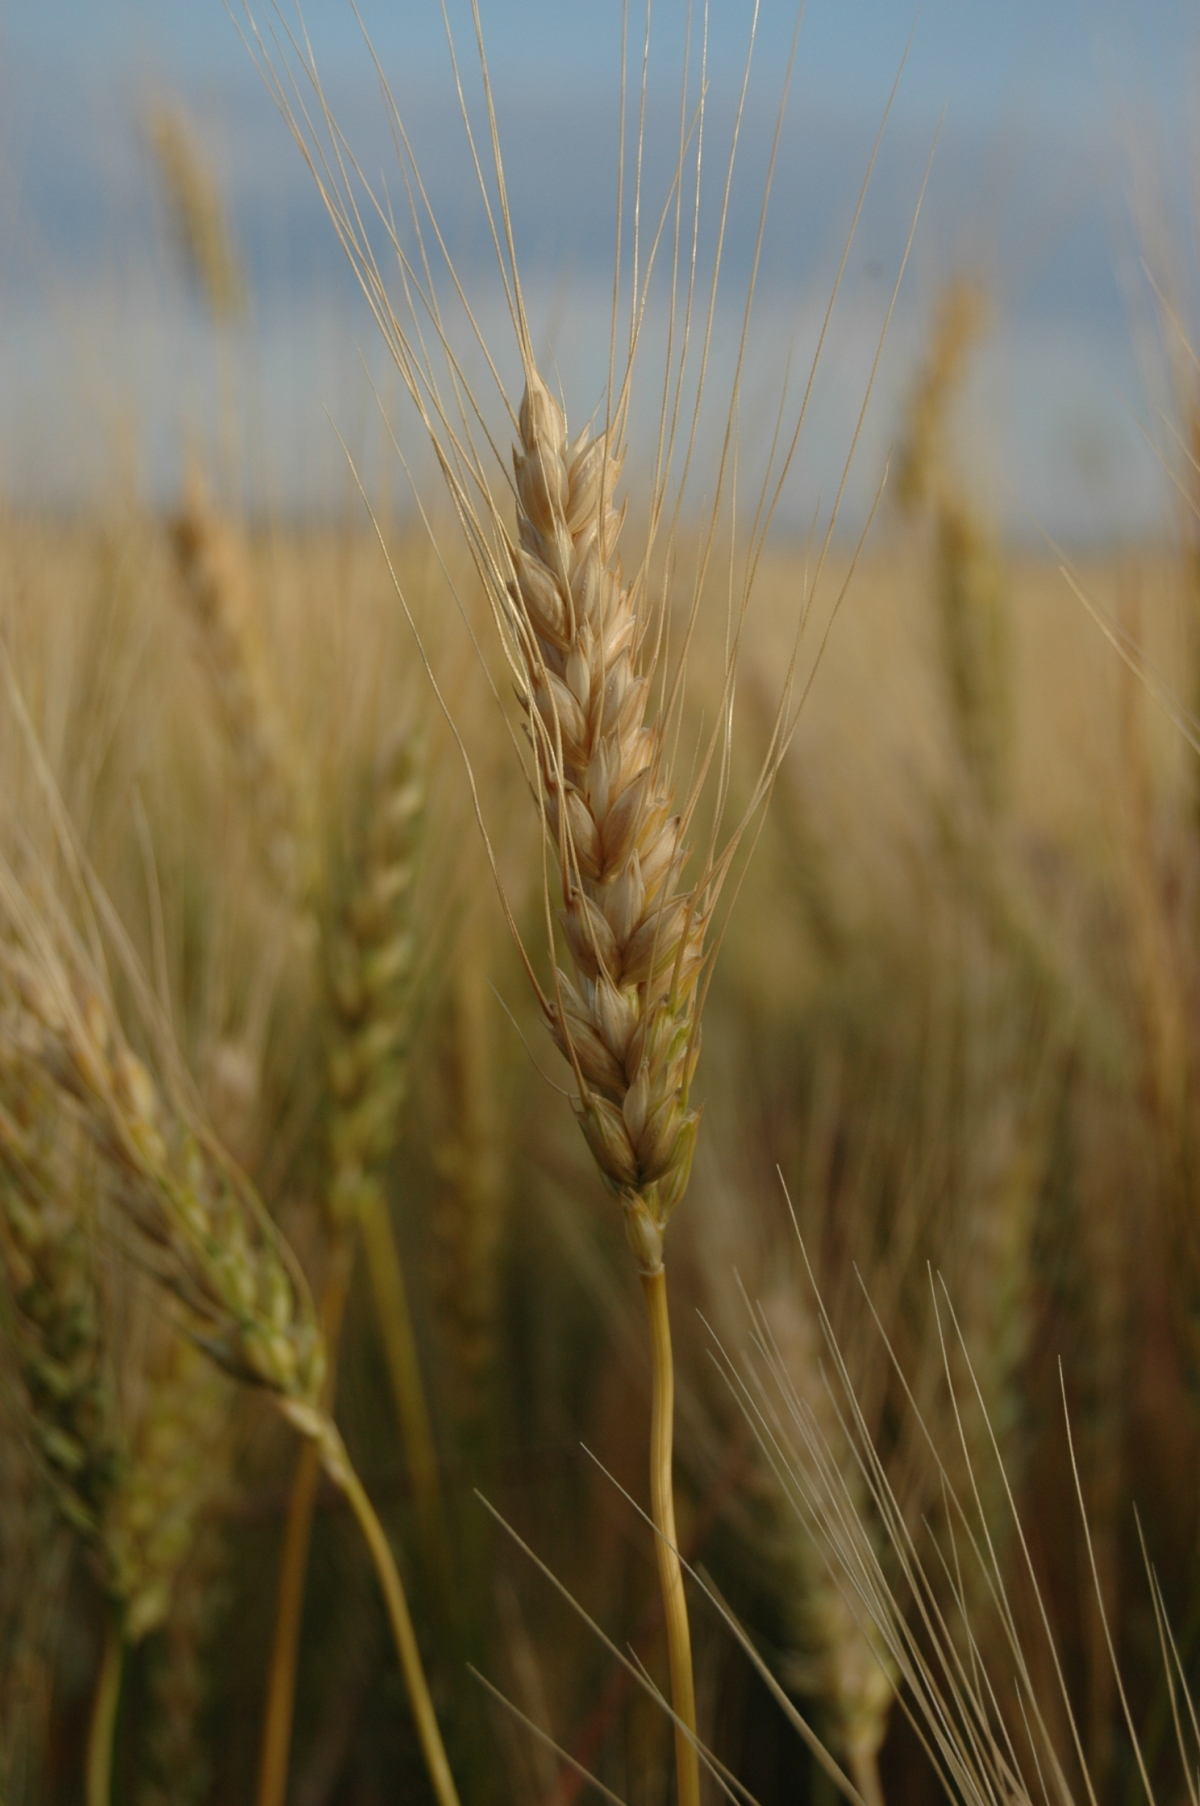 Wheat close up - Safe Haven Farm, Haven, KS